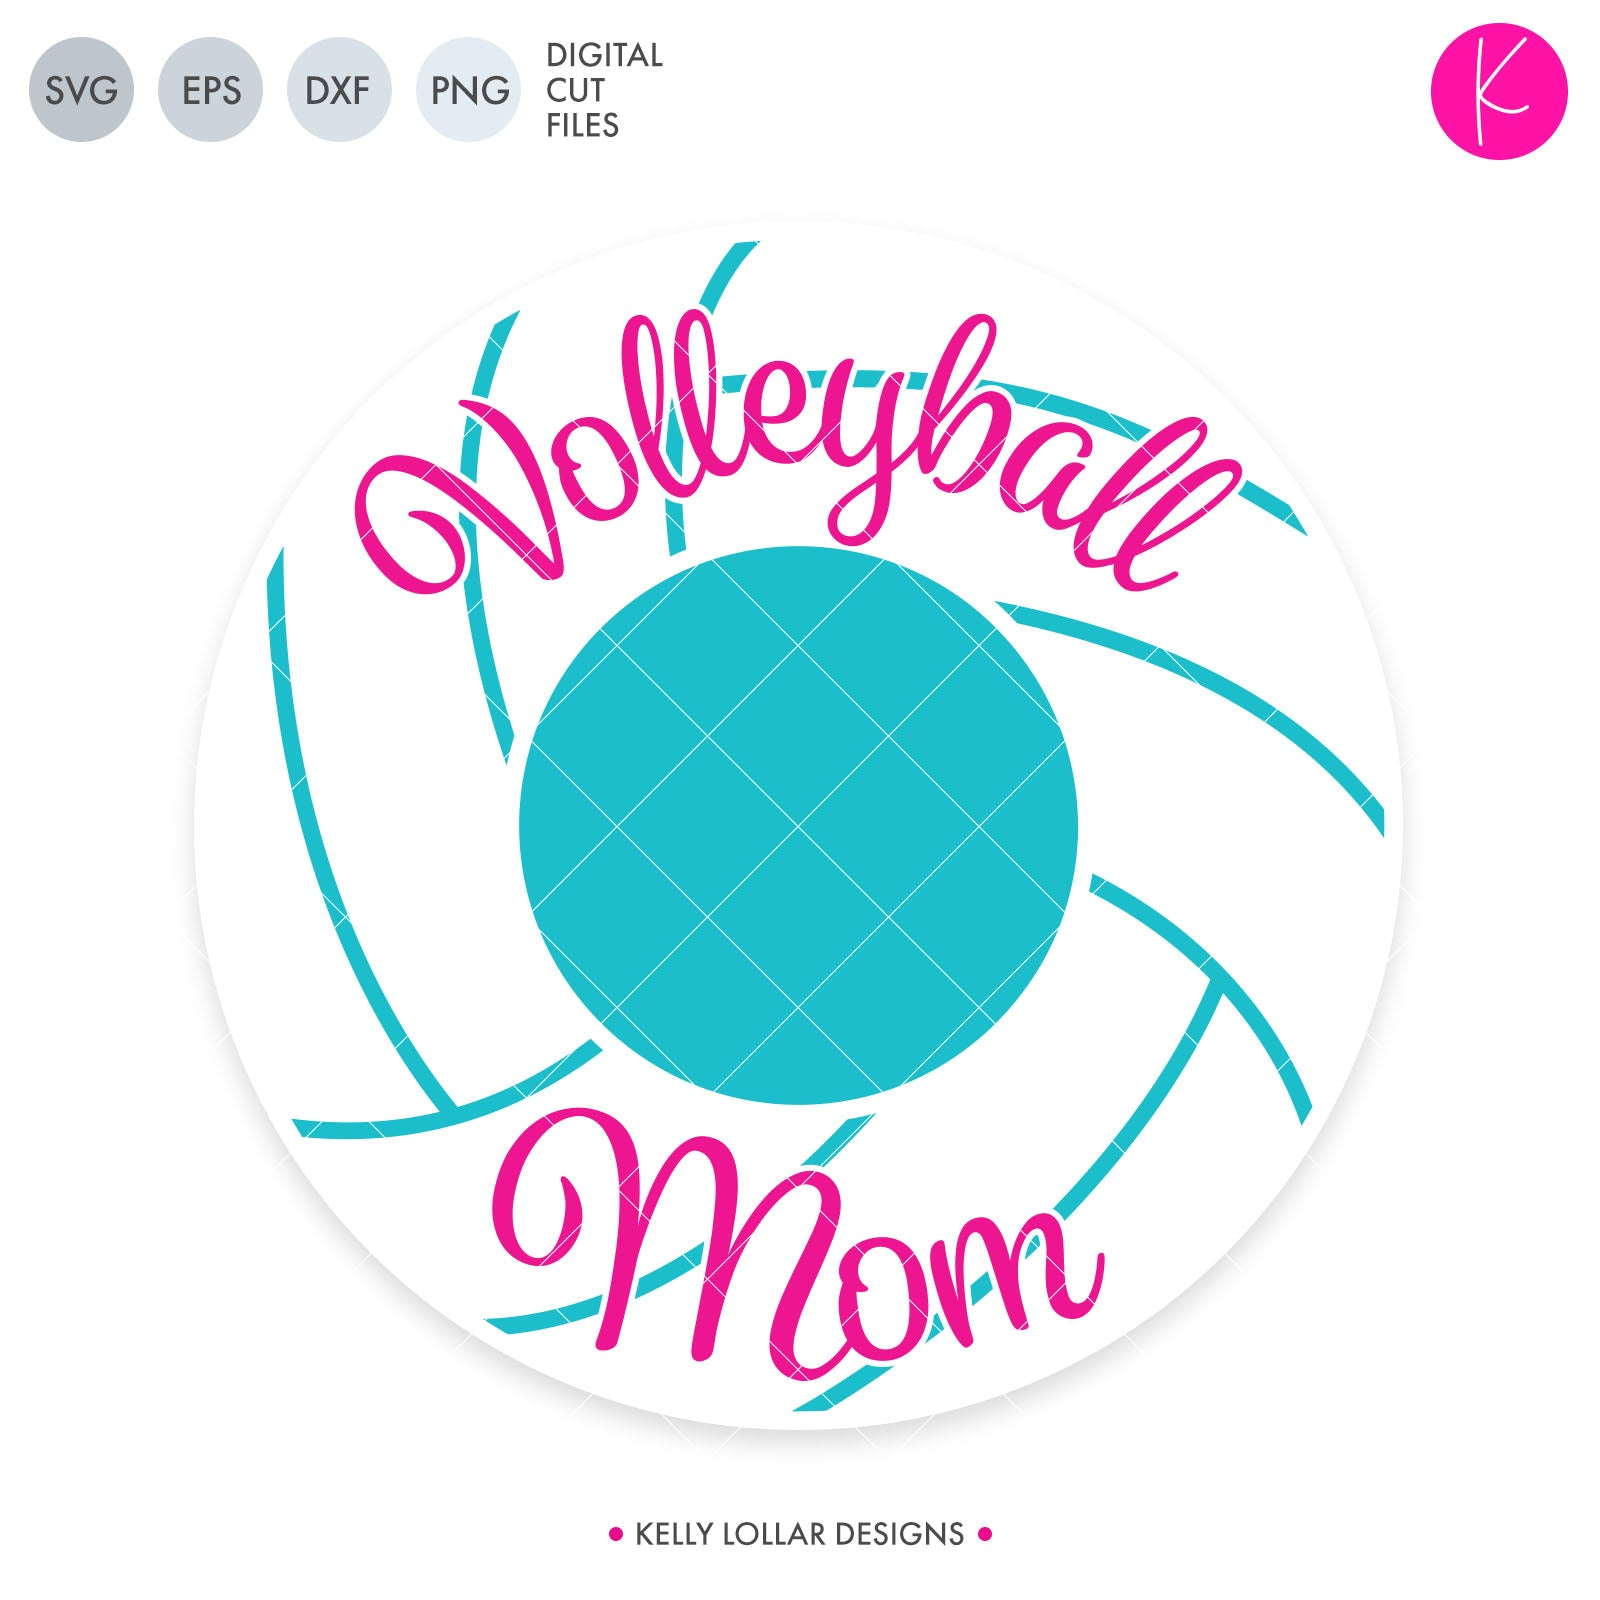 Volleyball Mom Monogram SVG Cut File Circle Monogram Frame with Volleyball Line Knockouts and Script Volleyball Mom Around the Border | SVG DXF PNG Cut Files 2 files for each format 2 piece version with optional